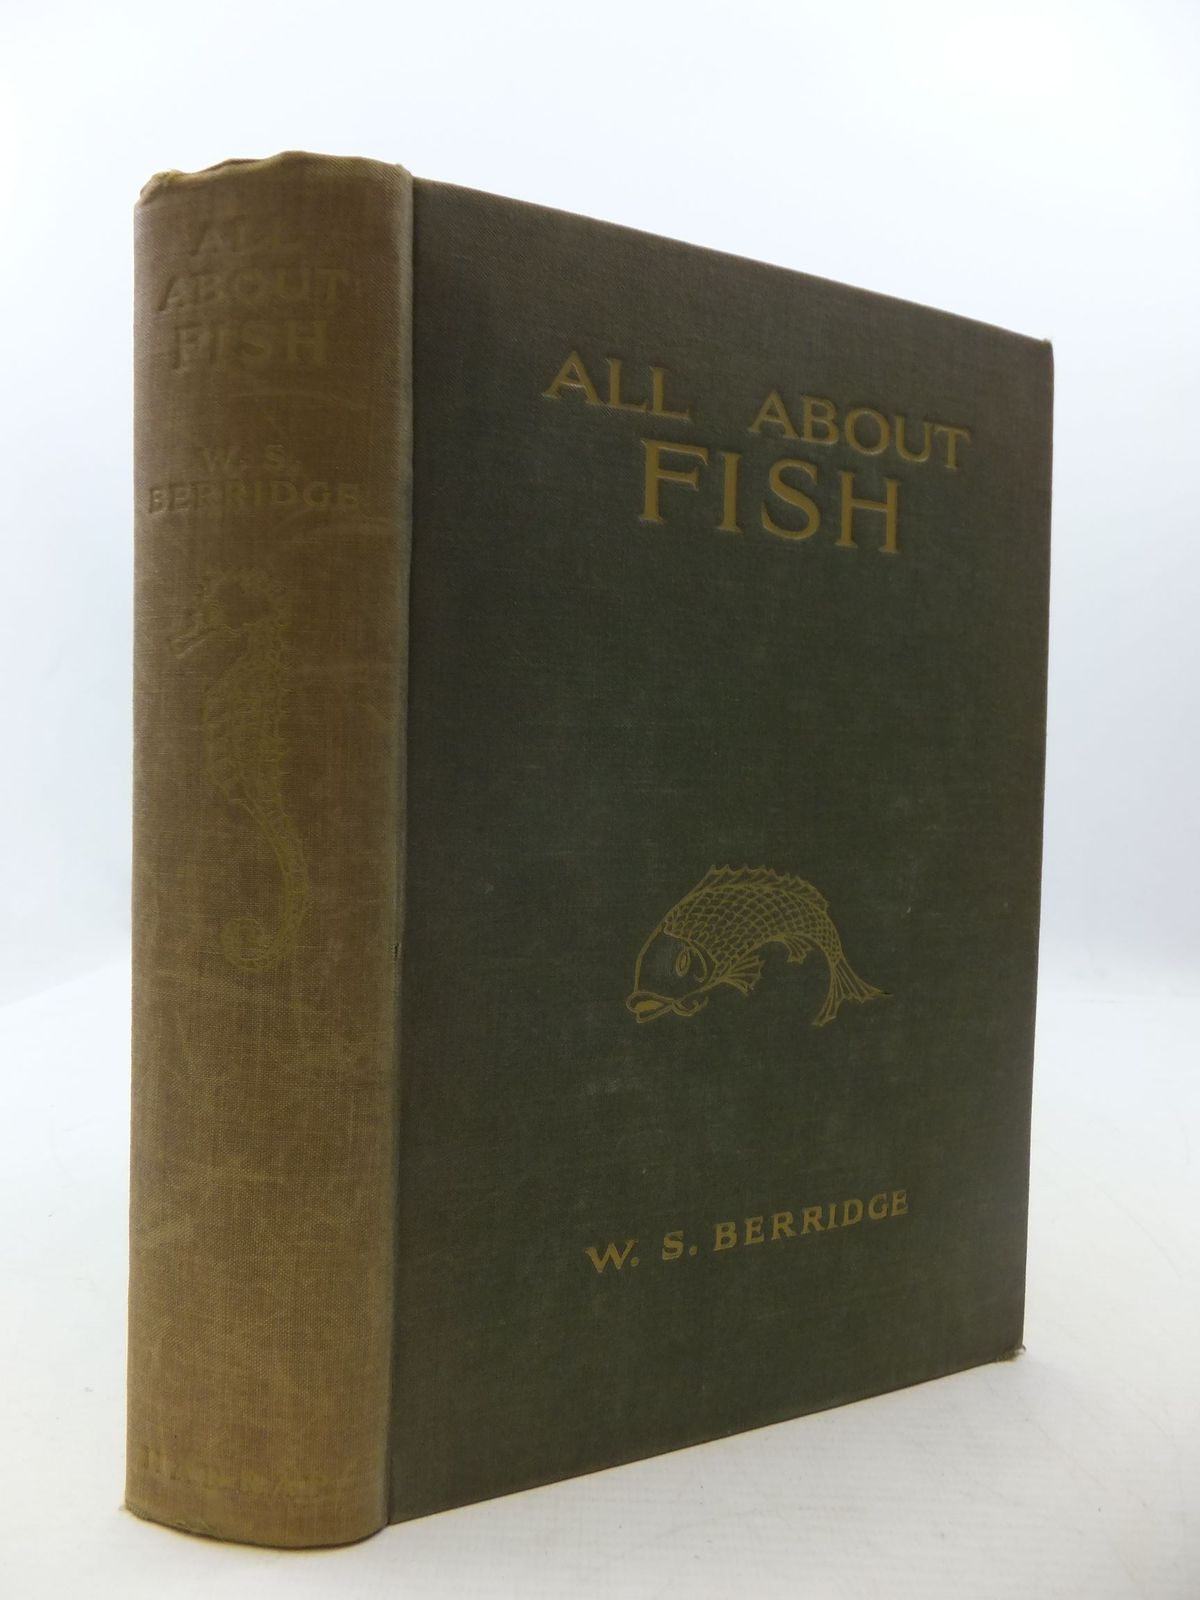 Photo of ALL ABOUT FISH written by Berridge, W.S. published by George G. Harrap & Co. Ltd. (STOCK CODE: 2111364)  for sale by Stella & Rose's Books